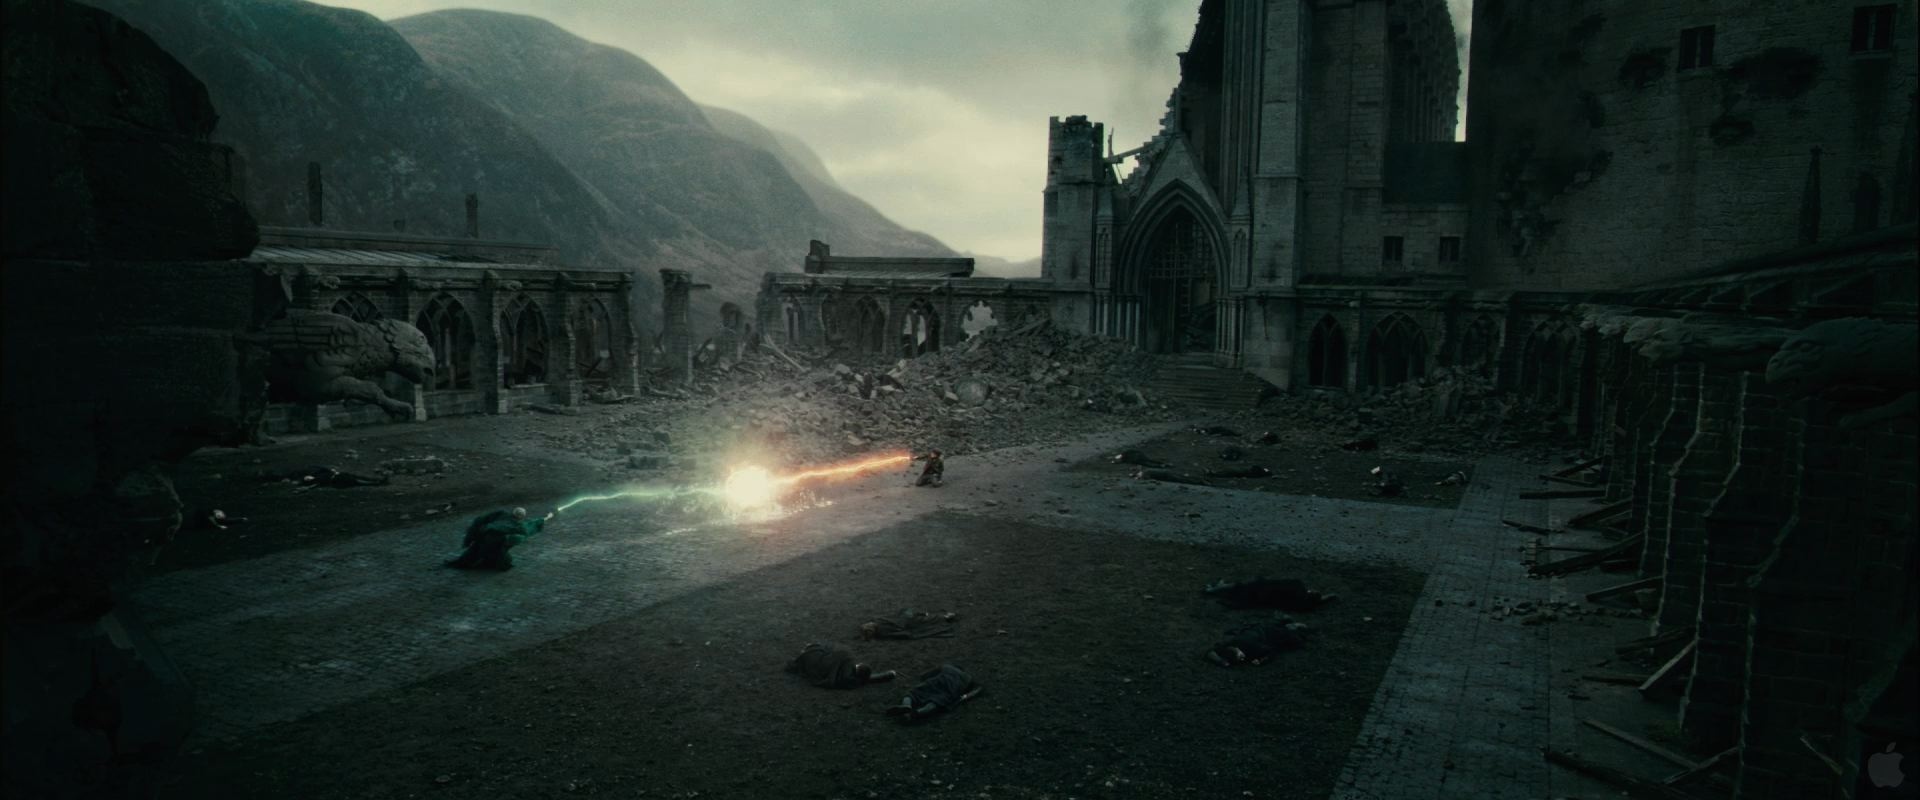 The 5 Most Iconic Moments In 'Harry Potter And The Deathly Hallows - Part 2' - Harry Defeats Voldemort